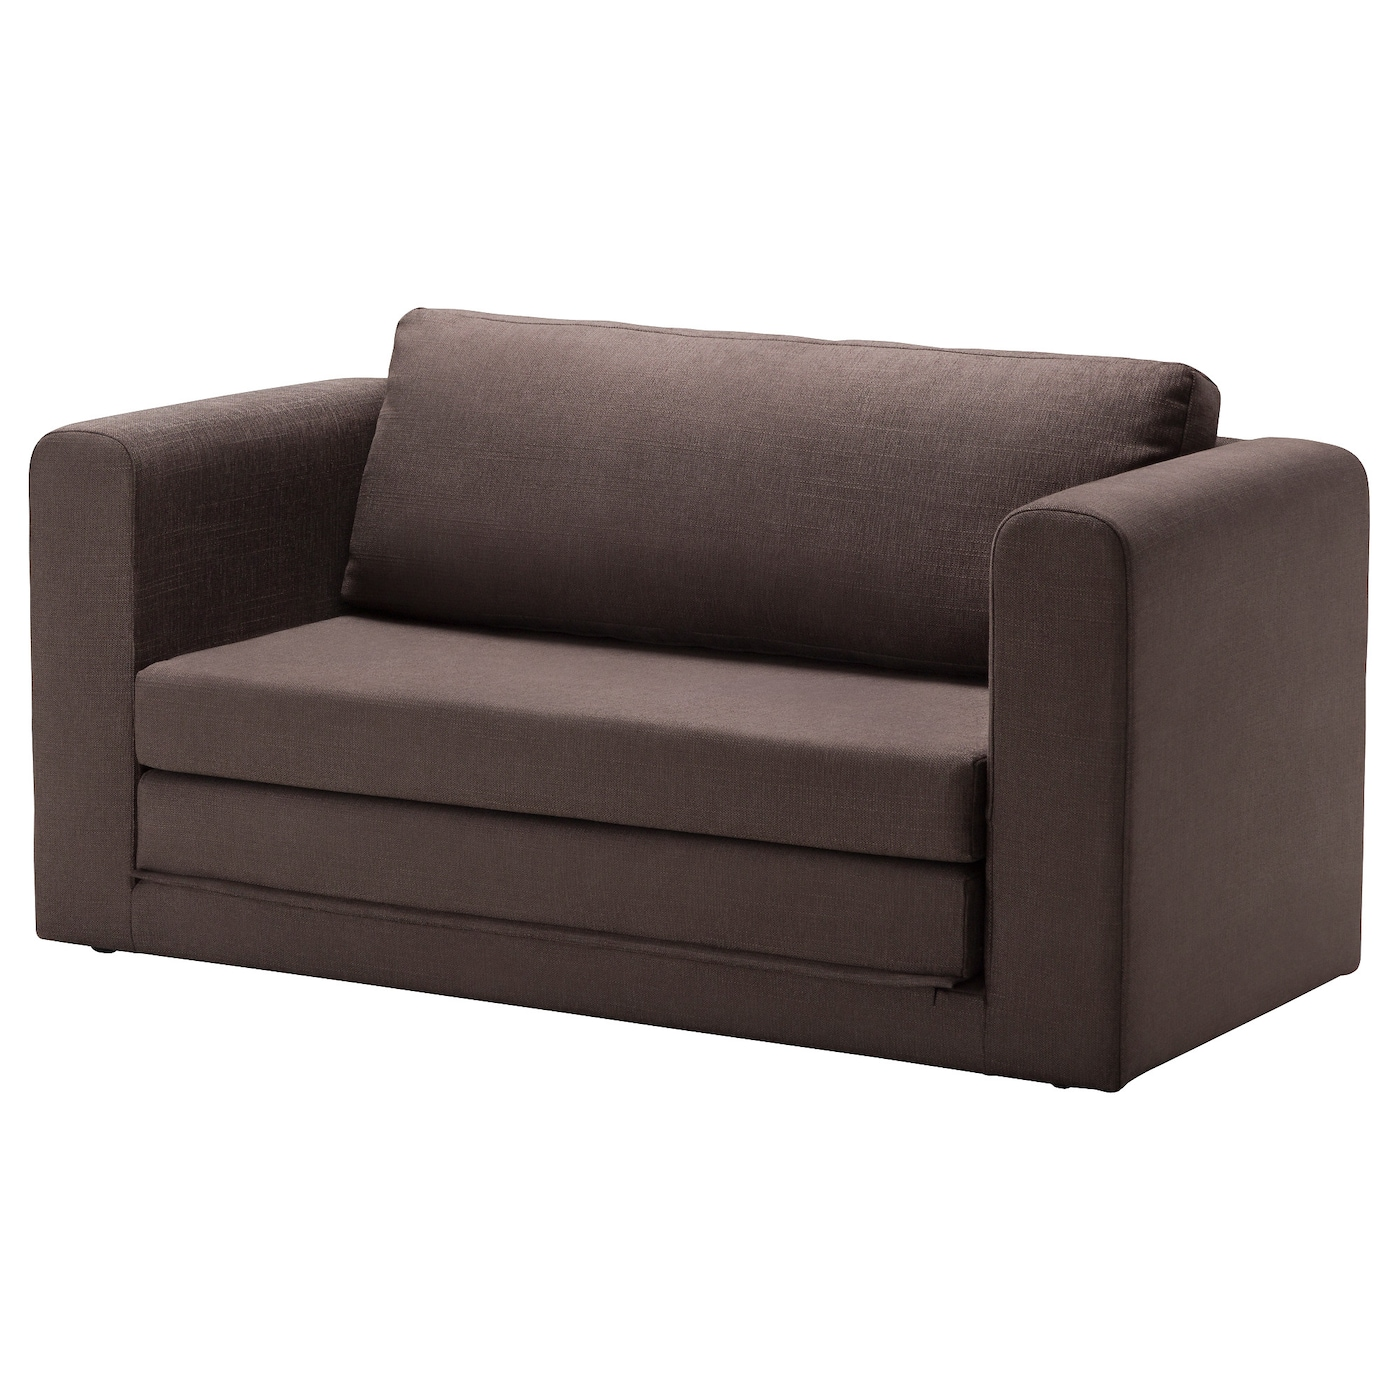 Sofa Bed askeby two-seat sofa-bed tullinge grey/brown - ikea